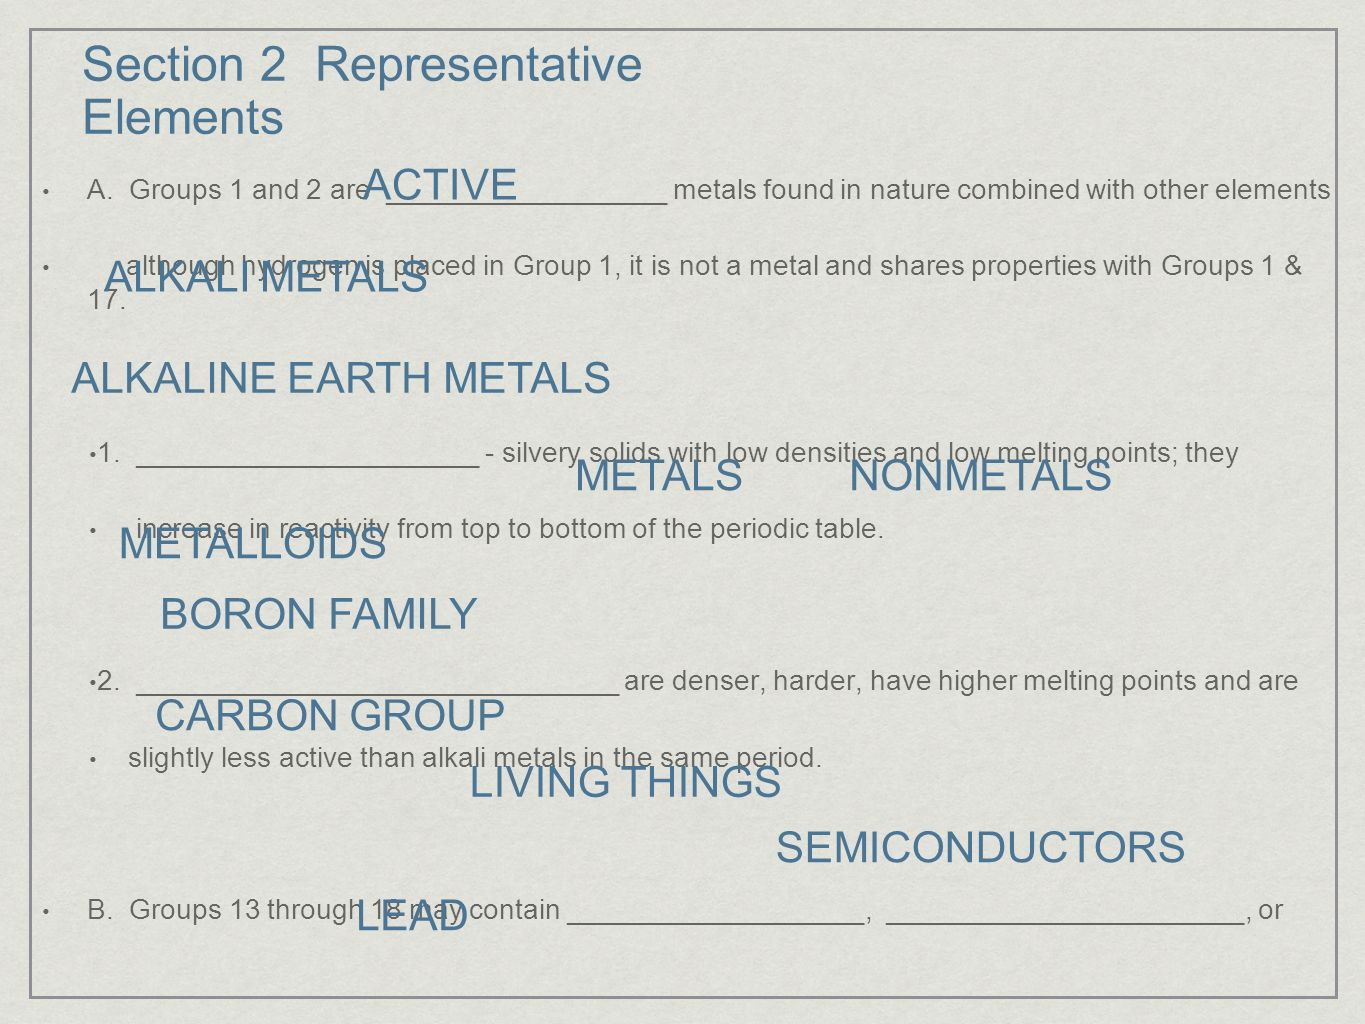 Section 1 introduction to the periodic table ppt video online 10 section 2 representative elements gamestrikefo Gallery